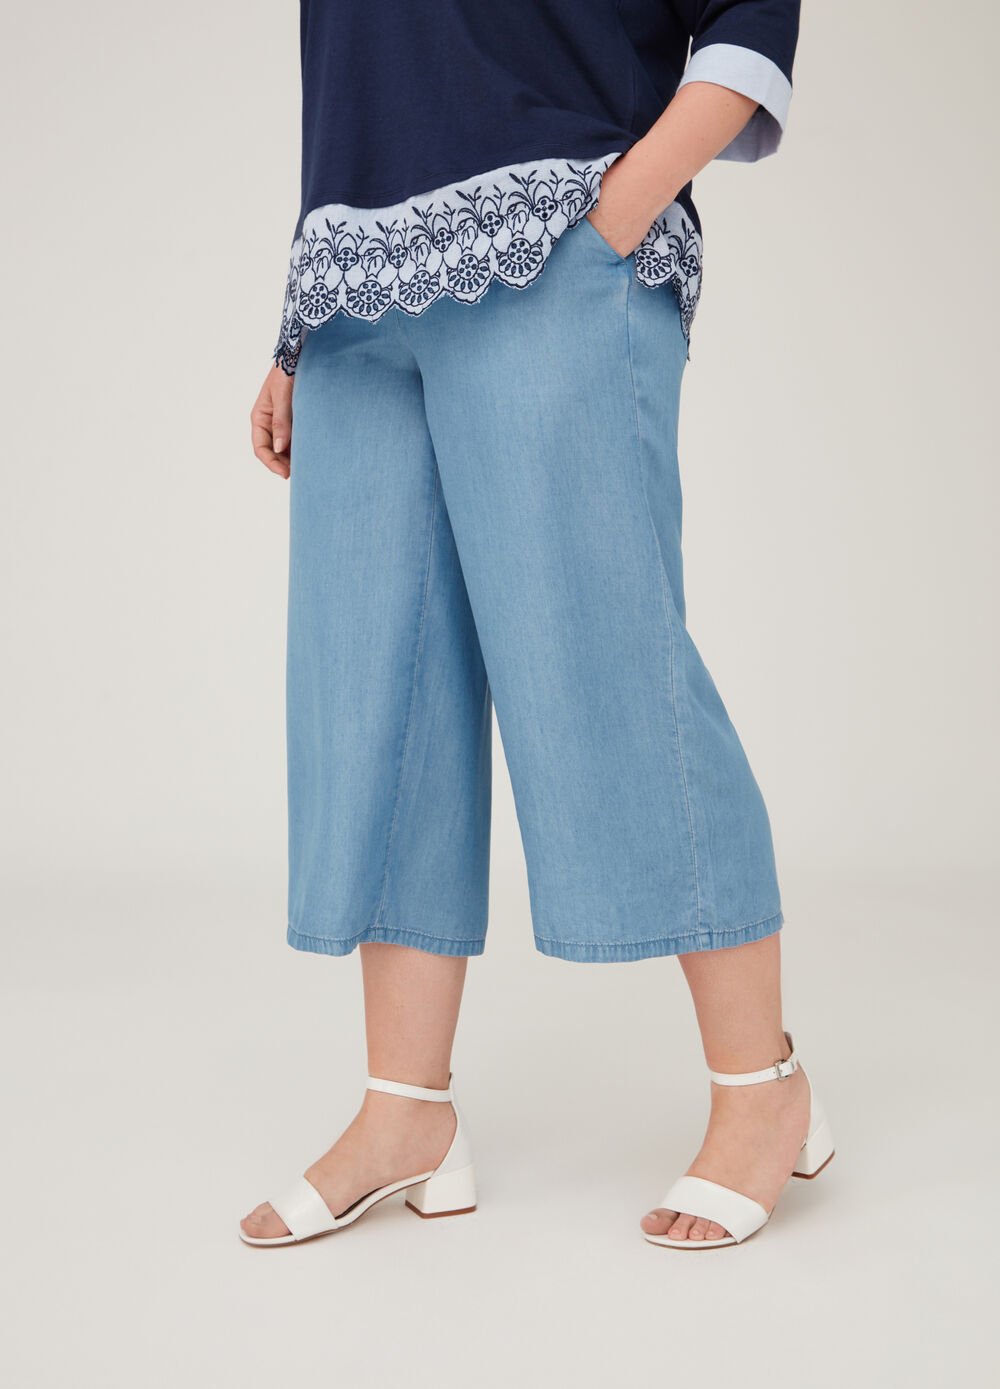 Curvy crop jeans with pockets